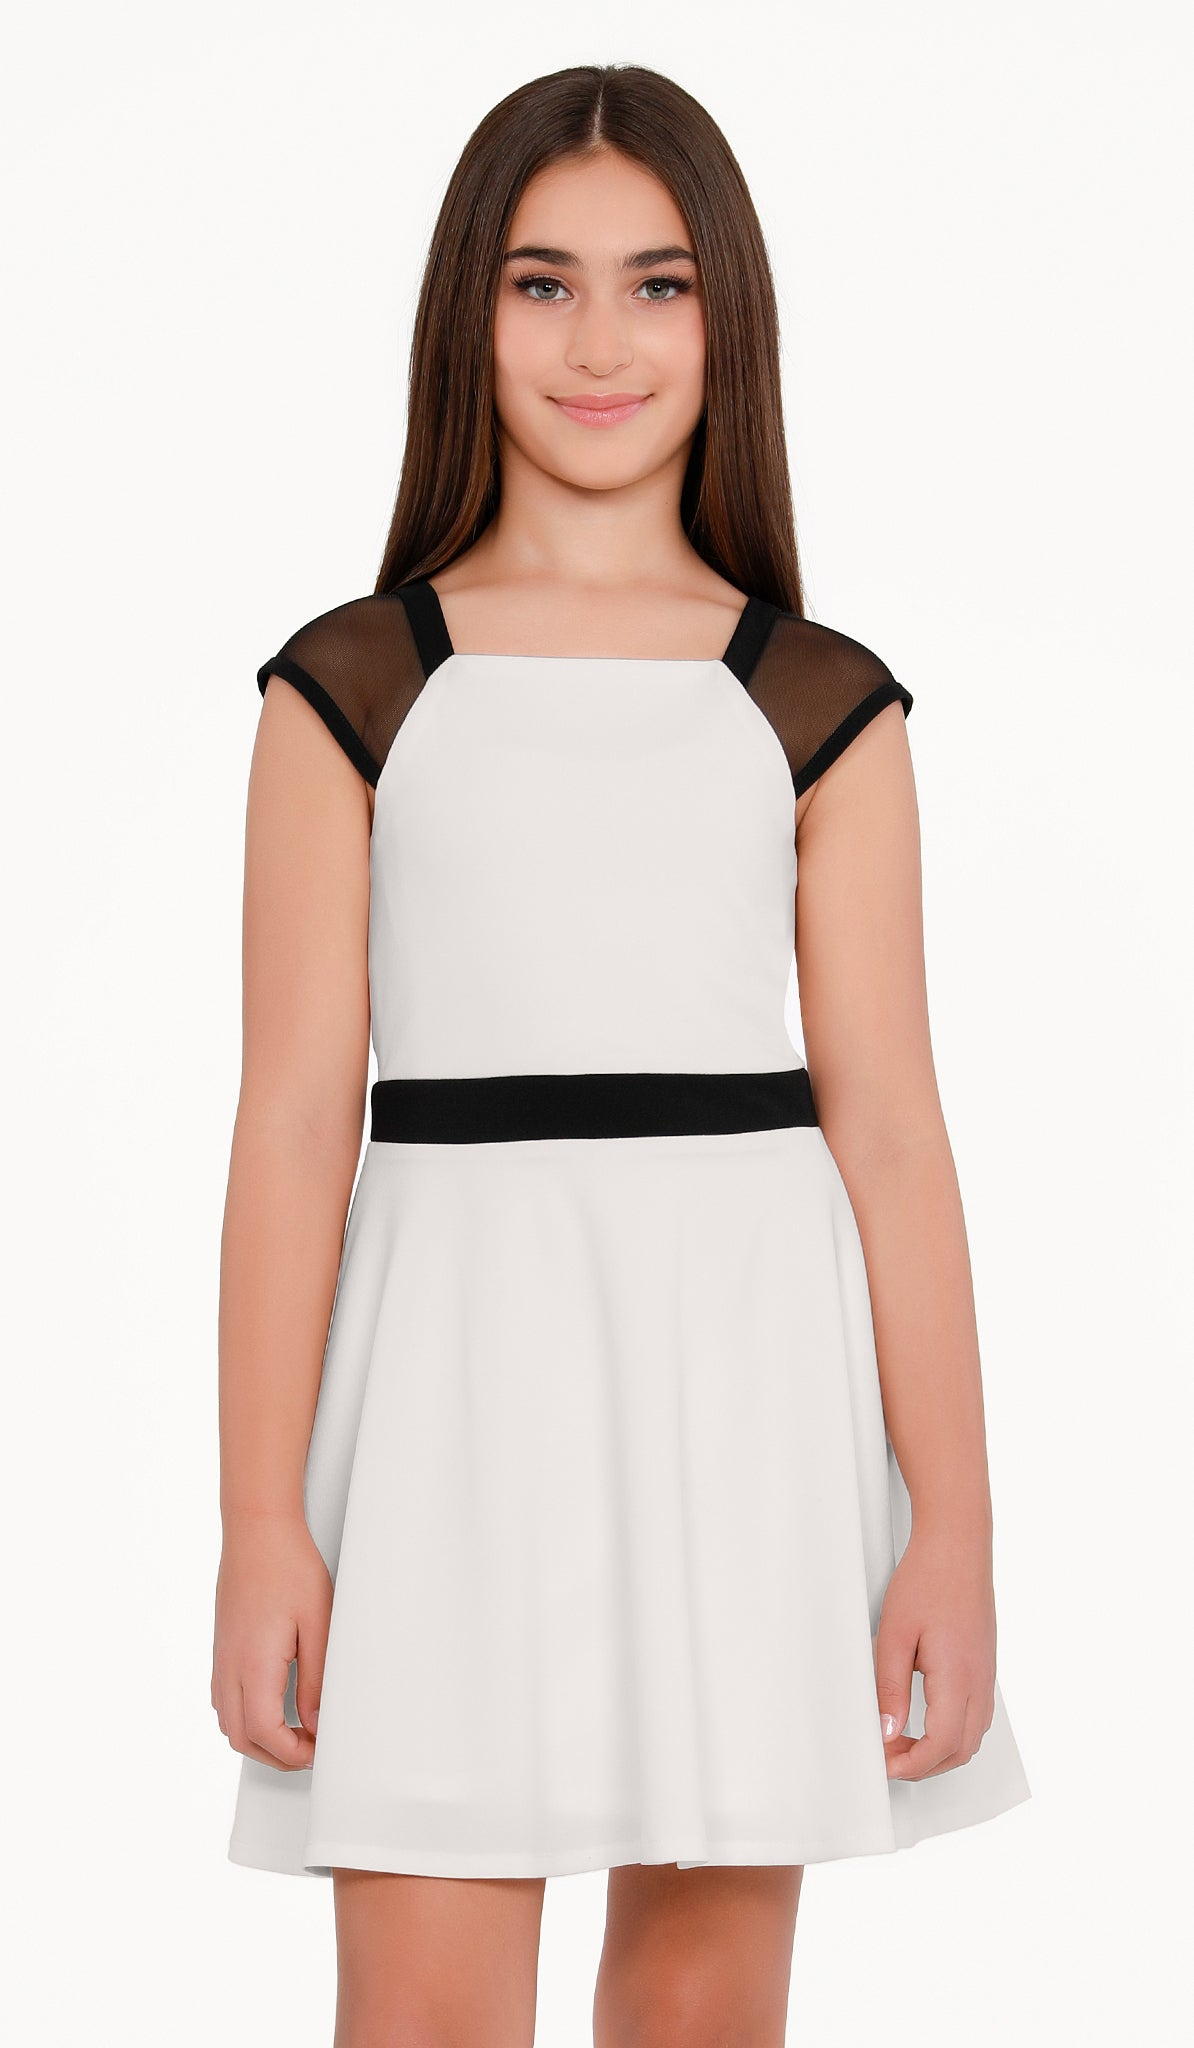 The Sally Miller York Dress | Ivory stretch crepe georgette fit and flare dress fully lined with black trim and illusion mesh cap sleeve